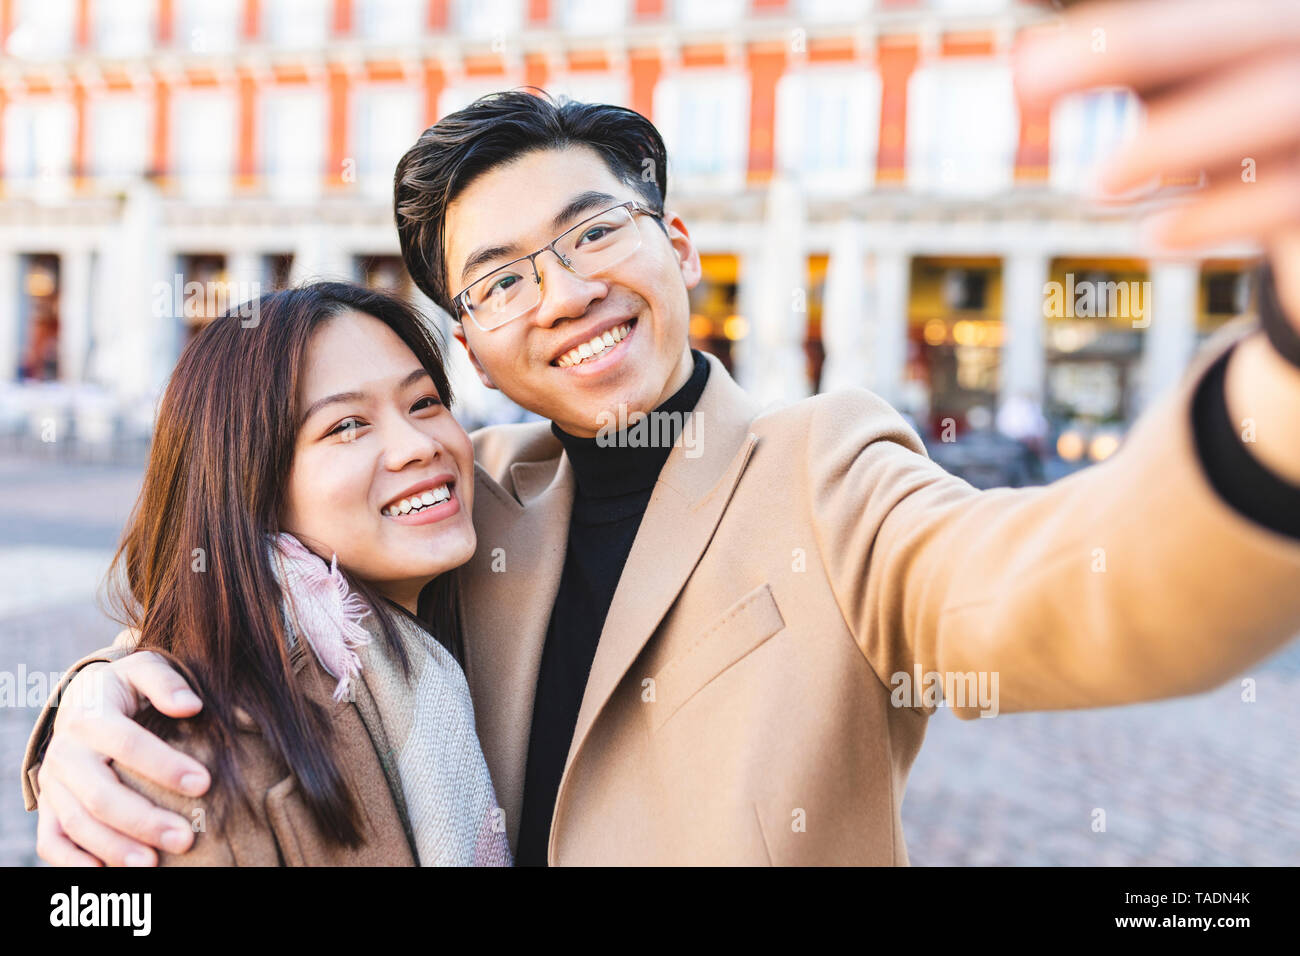 Spain, Madrid, happy young couple taking a selfie in the city - Stock Image